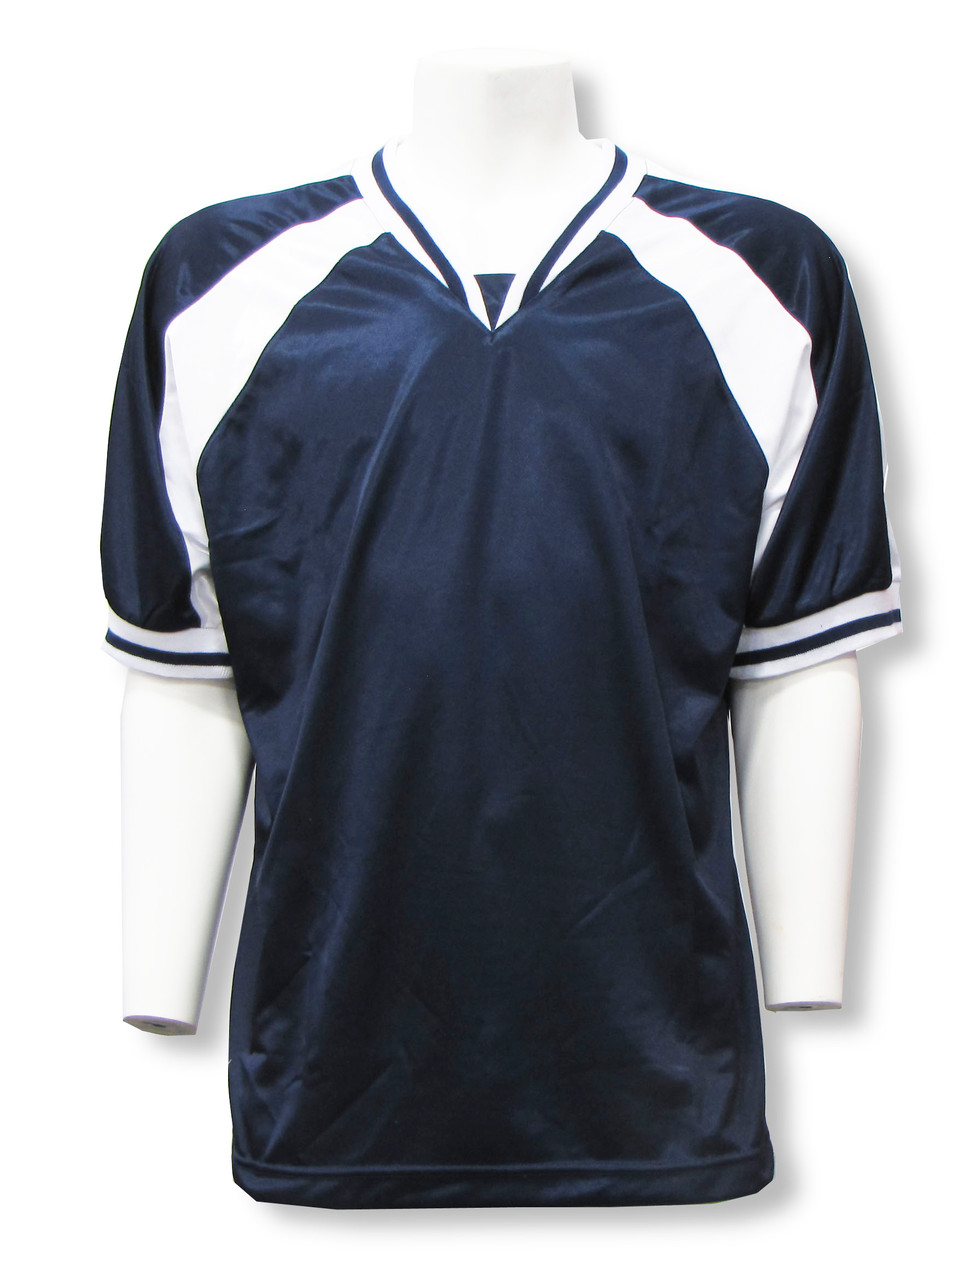 838b9d070 Spitfire Soccer Jersey - Youth and Adult Soccer Uniforms